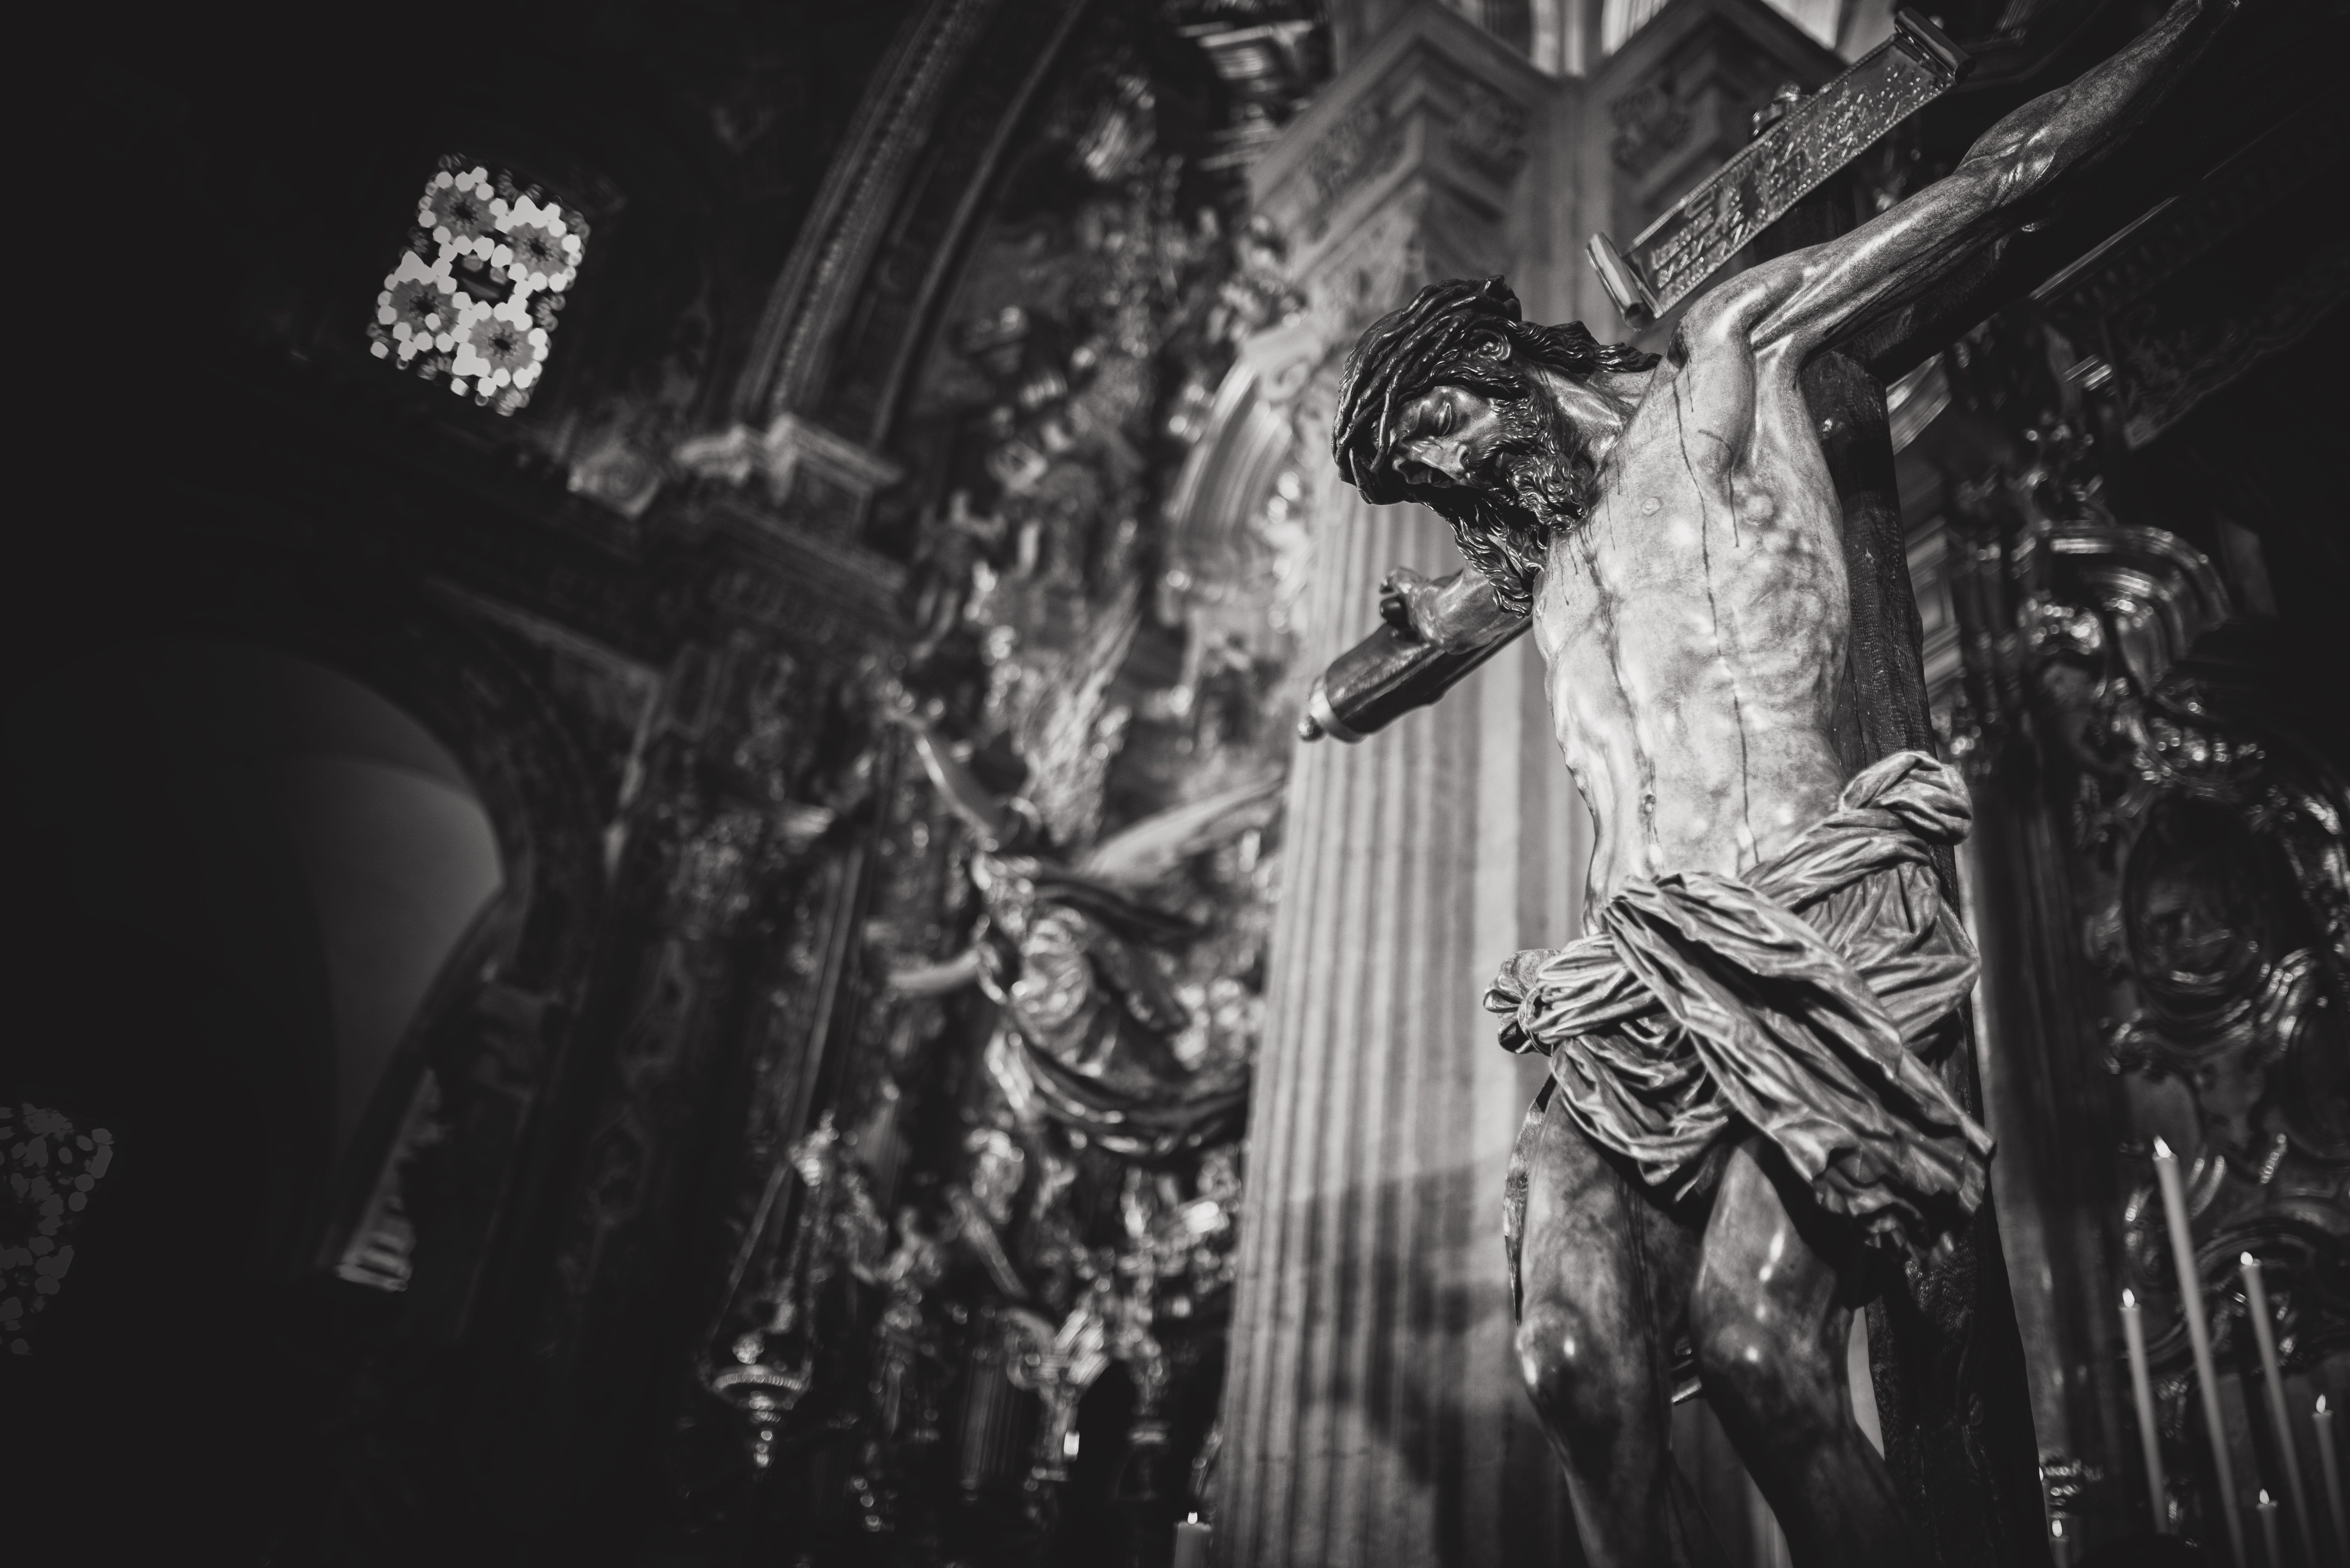 Monochrome Photo of Crucifix